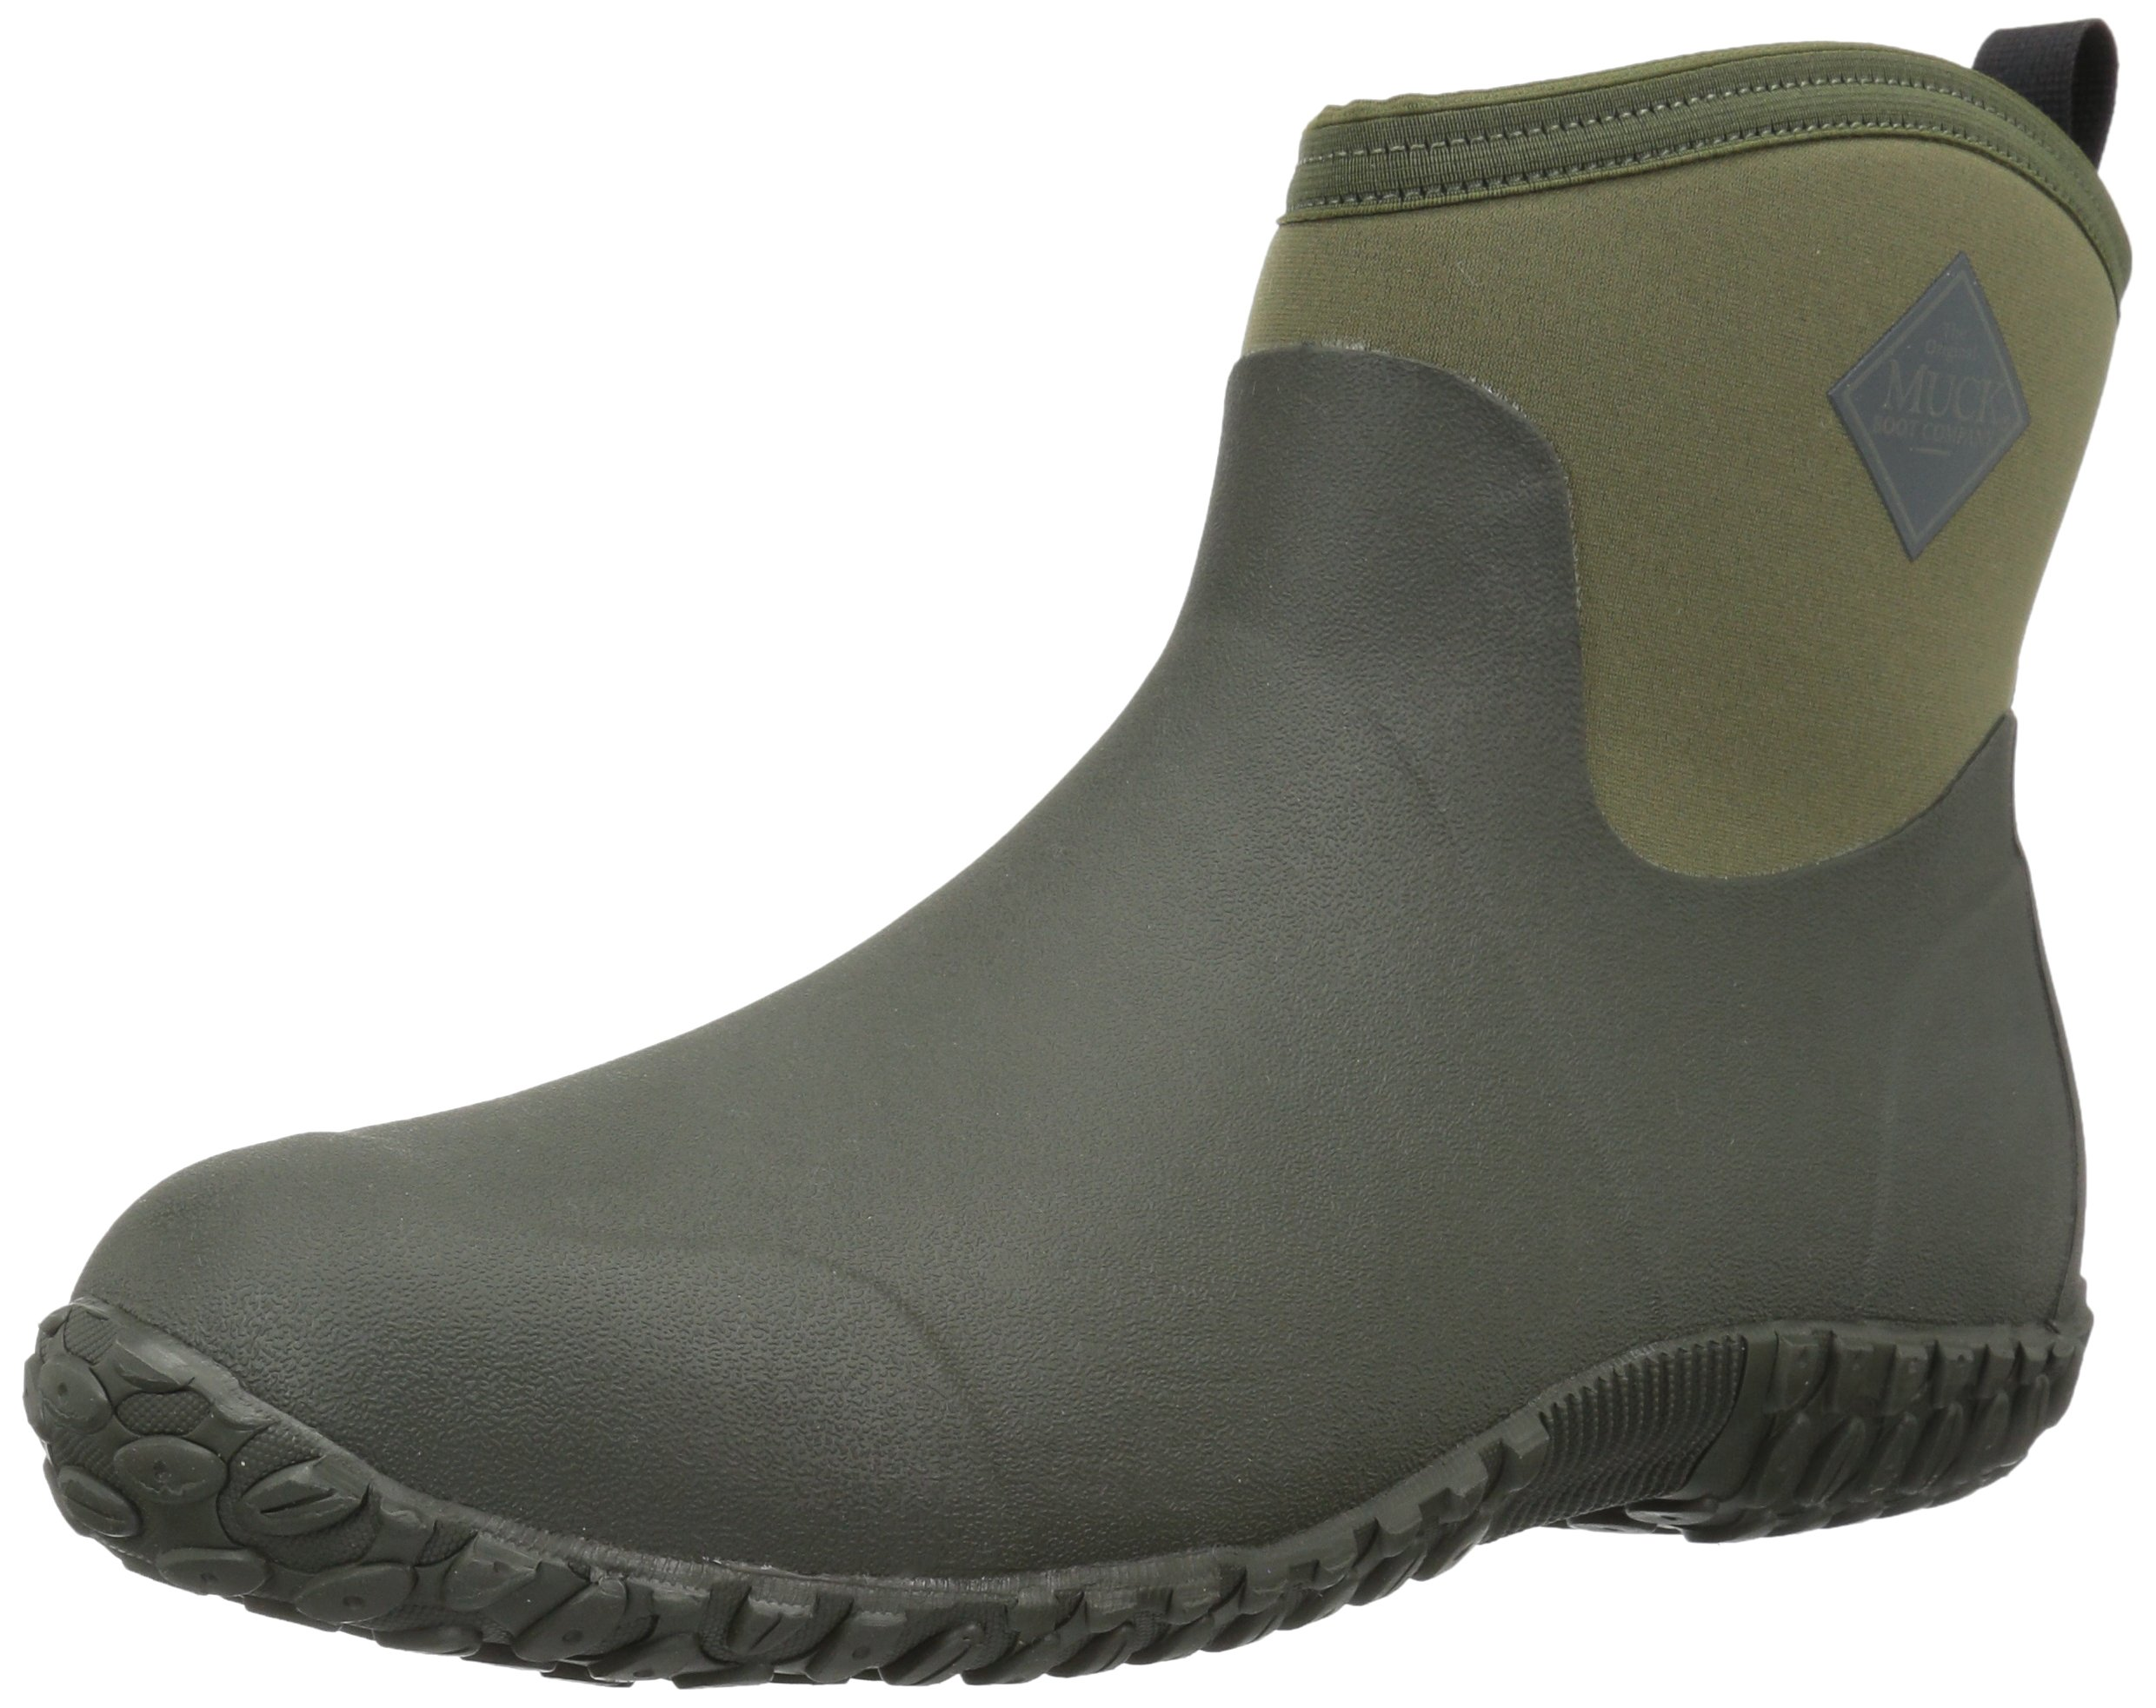 Muckster ll Ankle-Height Men's Rubber Garden Boots,Moss/Green,7 M US by Muck Boot